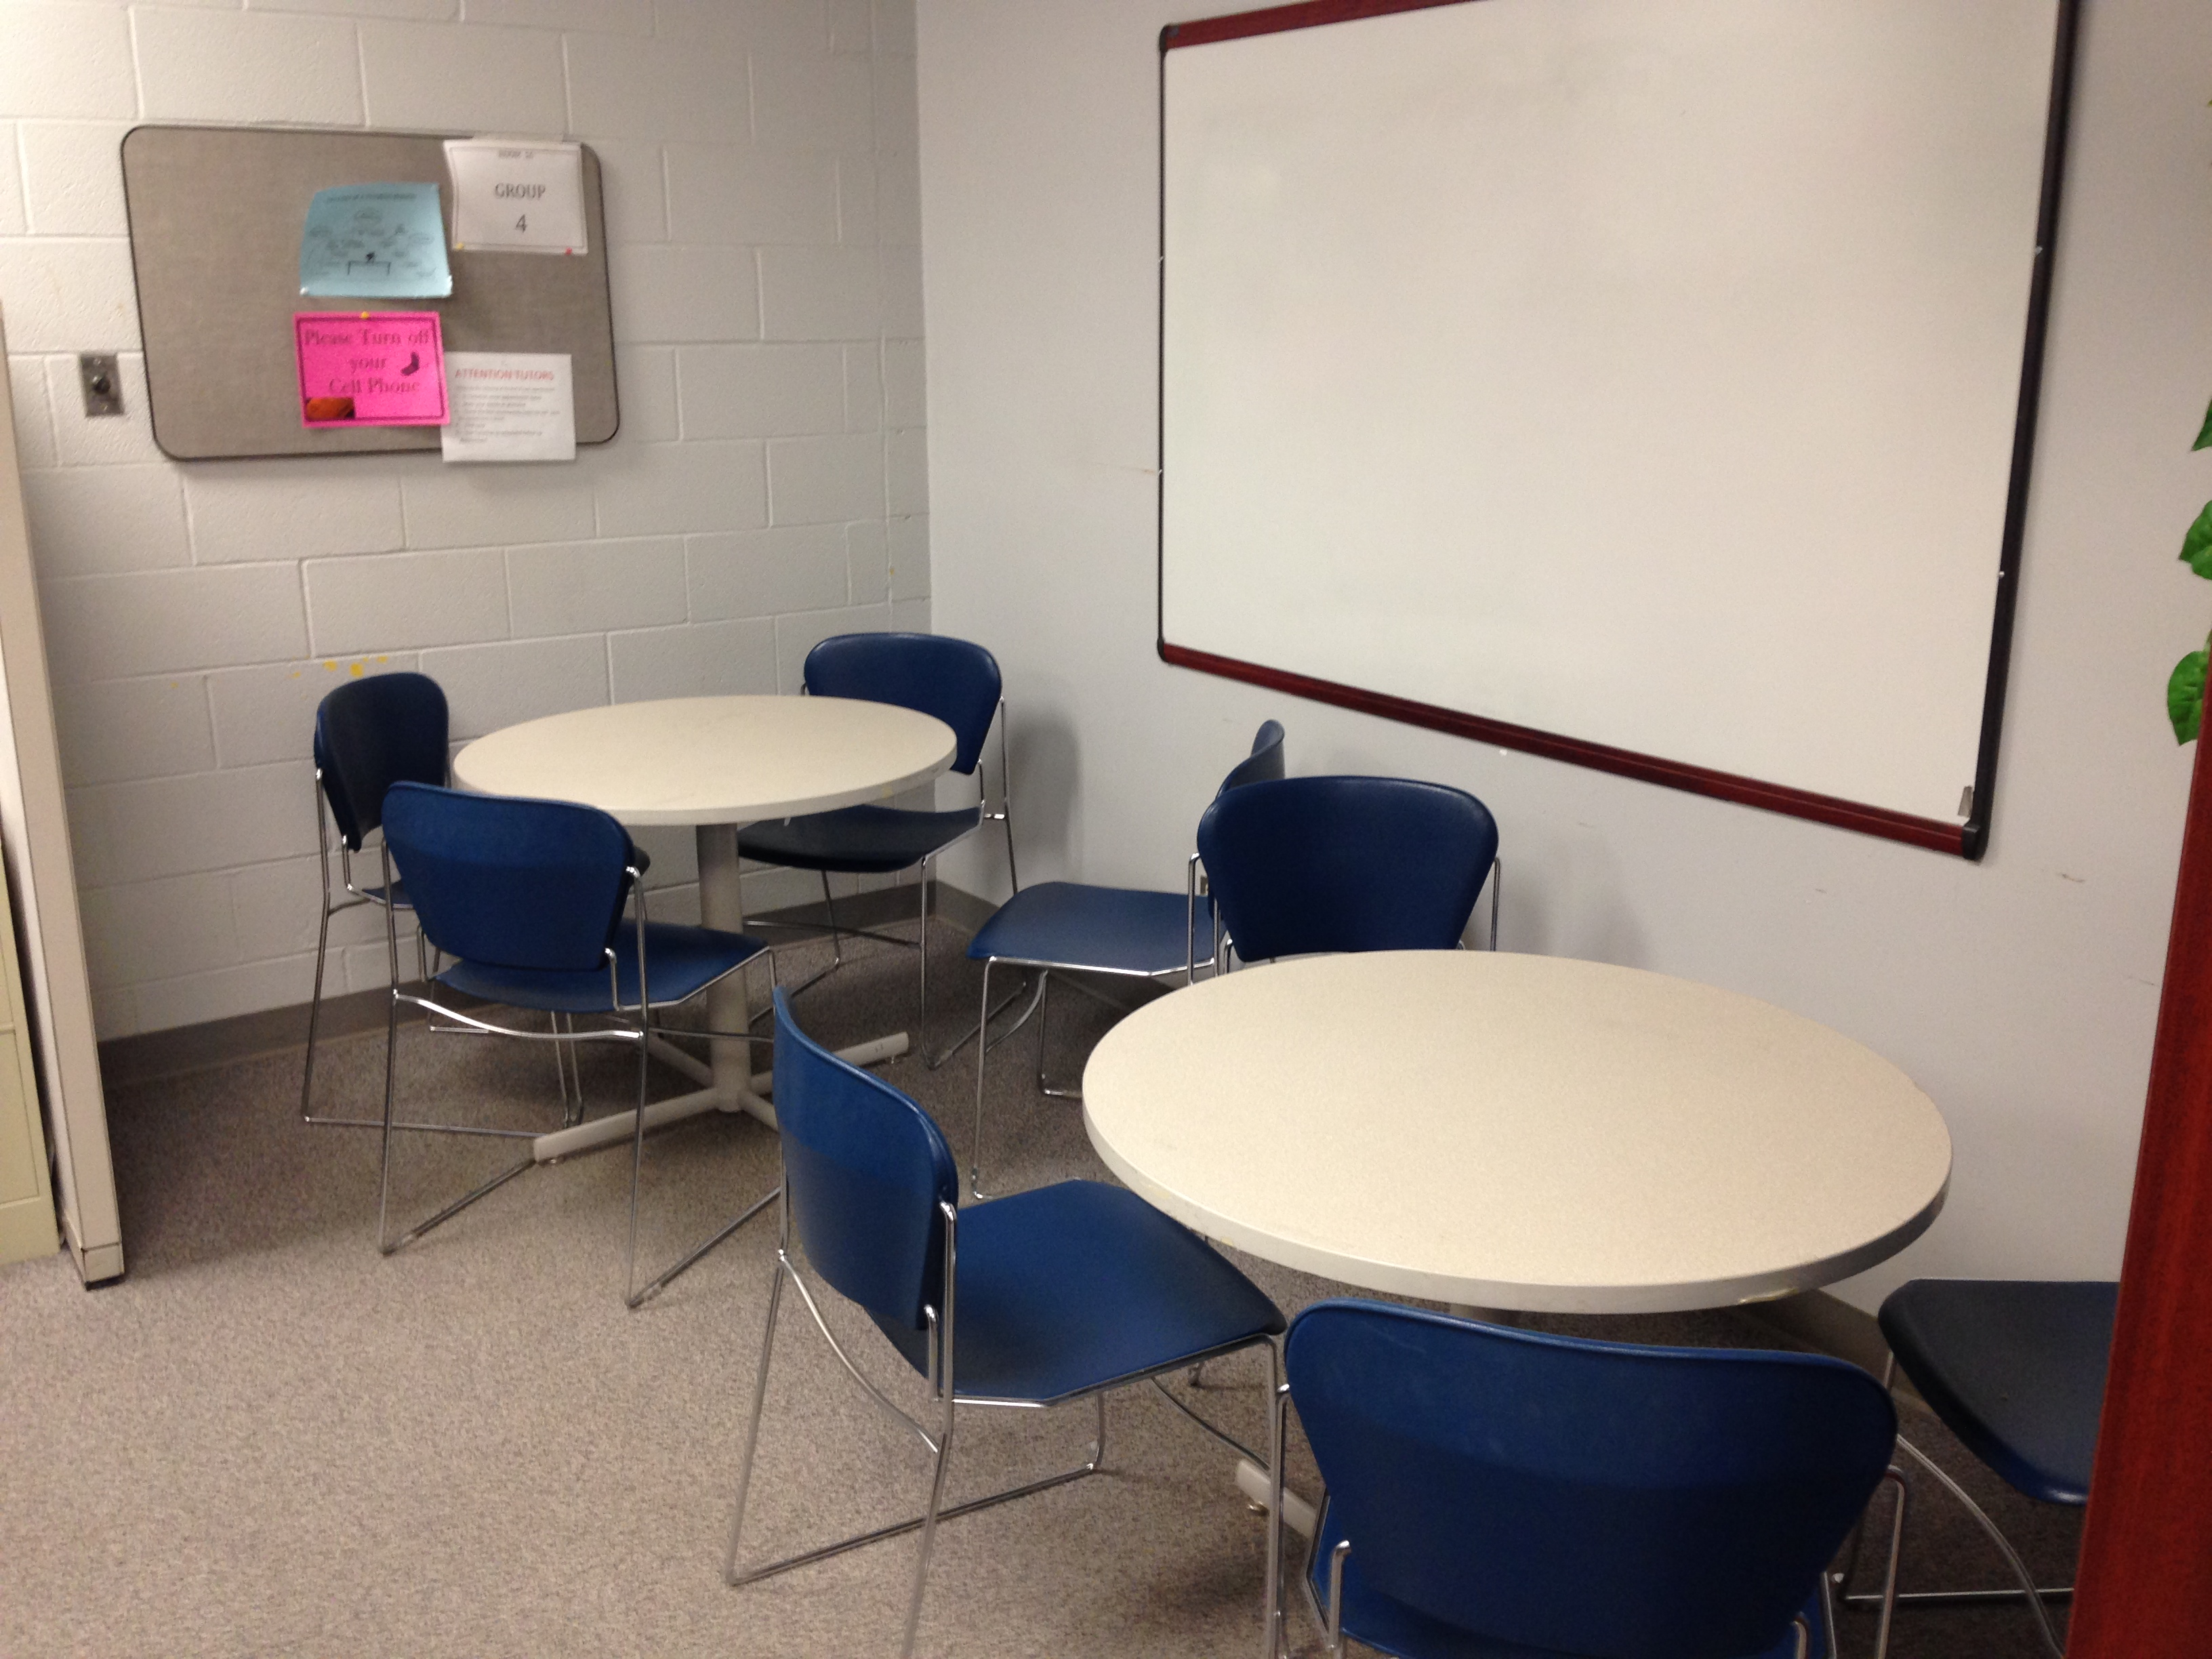 Image of the group tutoring stations in the Rinella Learning Center